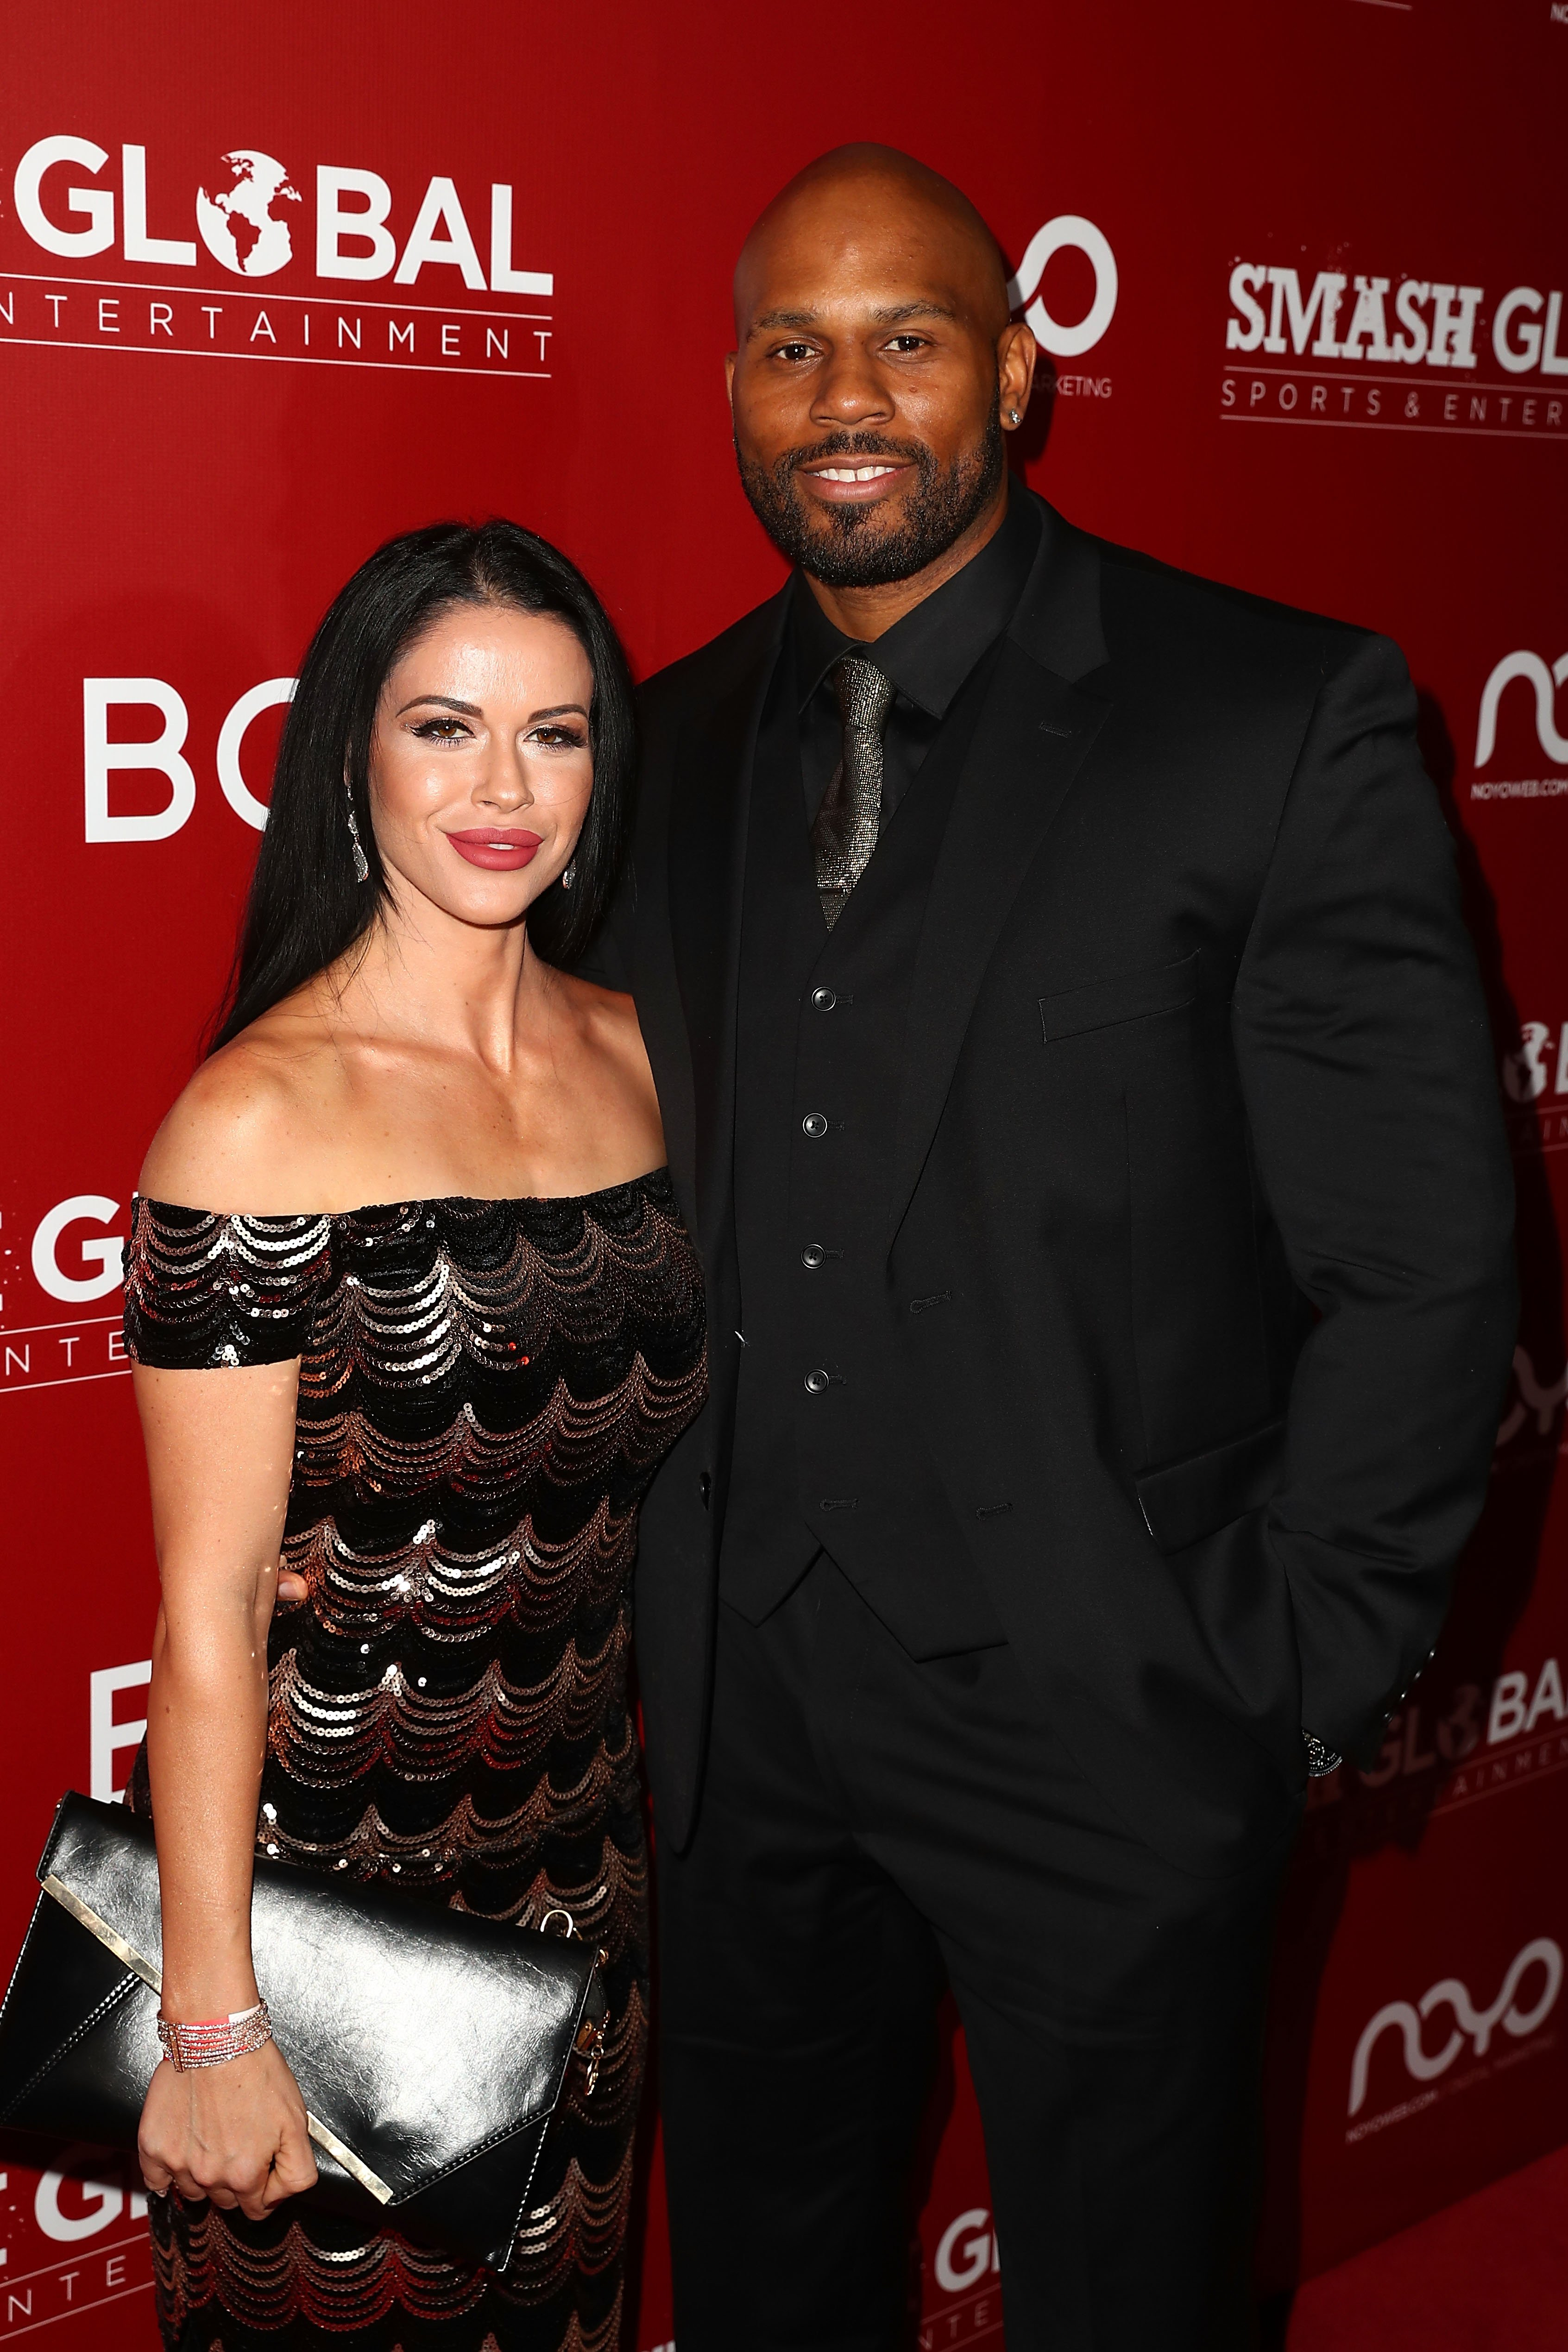 Siliana and Shad Gaspard attend SMASH Global VIII ñ Night Of Champions on December 13, 2018, in Hollywood, California. | Source: Getty Images.